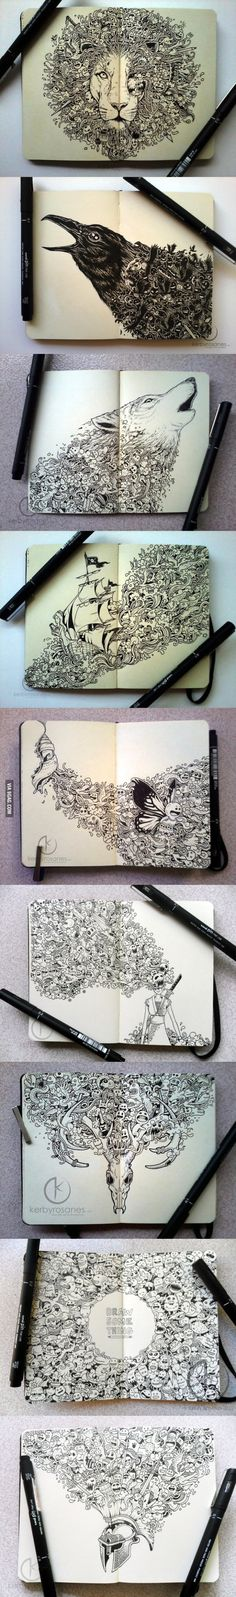 Incredible Moleskin drawings :: tattoo inspirations